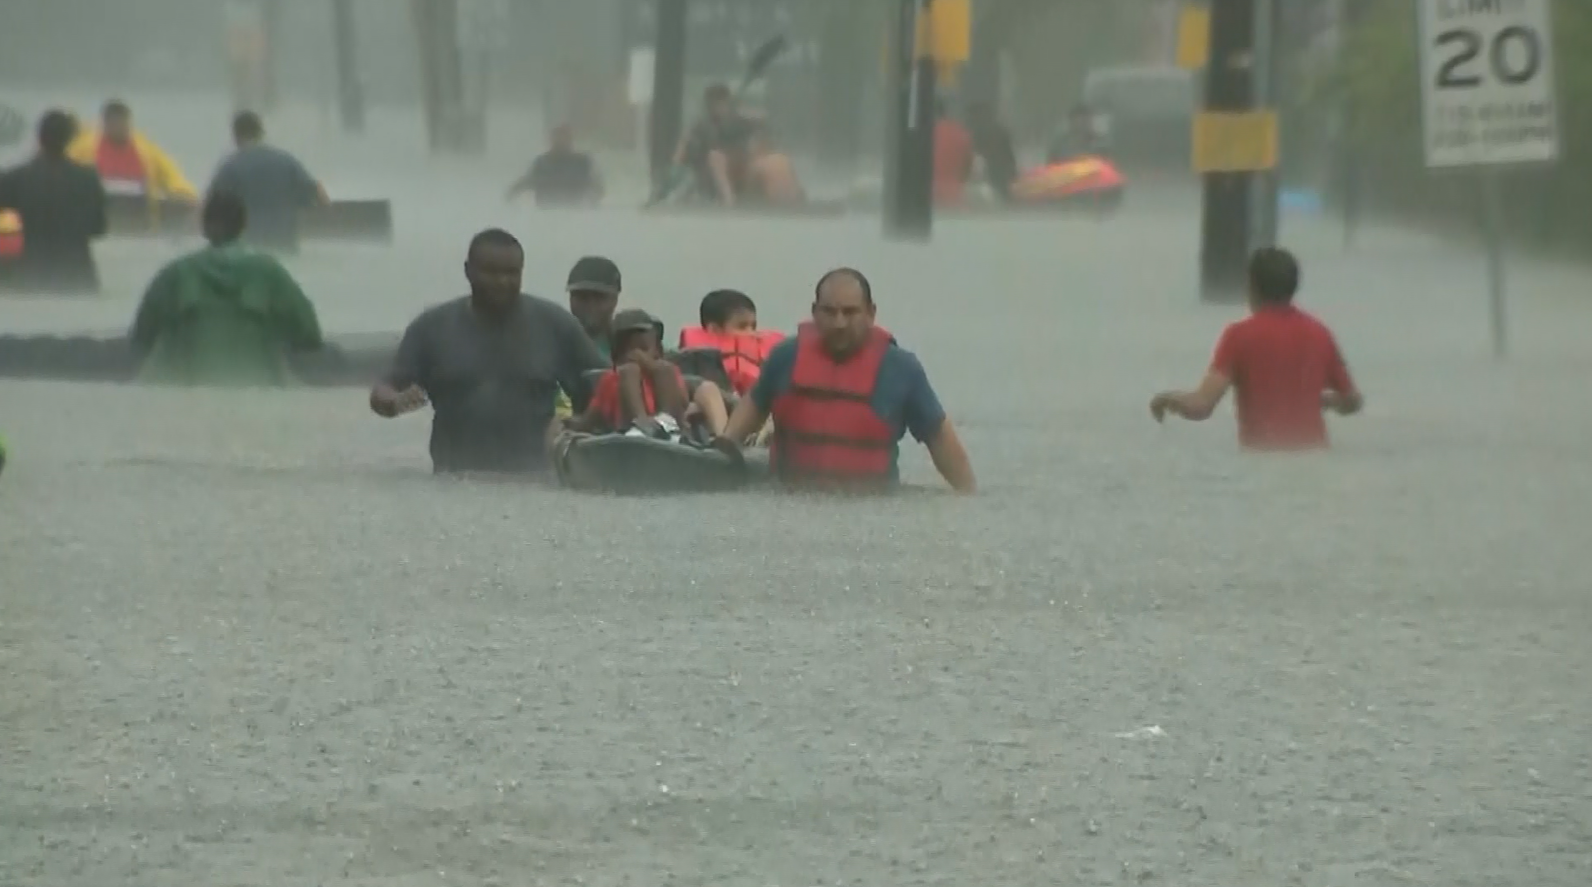 Dozens of evacuees flee flooding (KPRC/CNN)